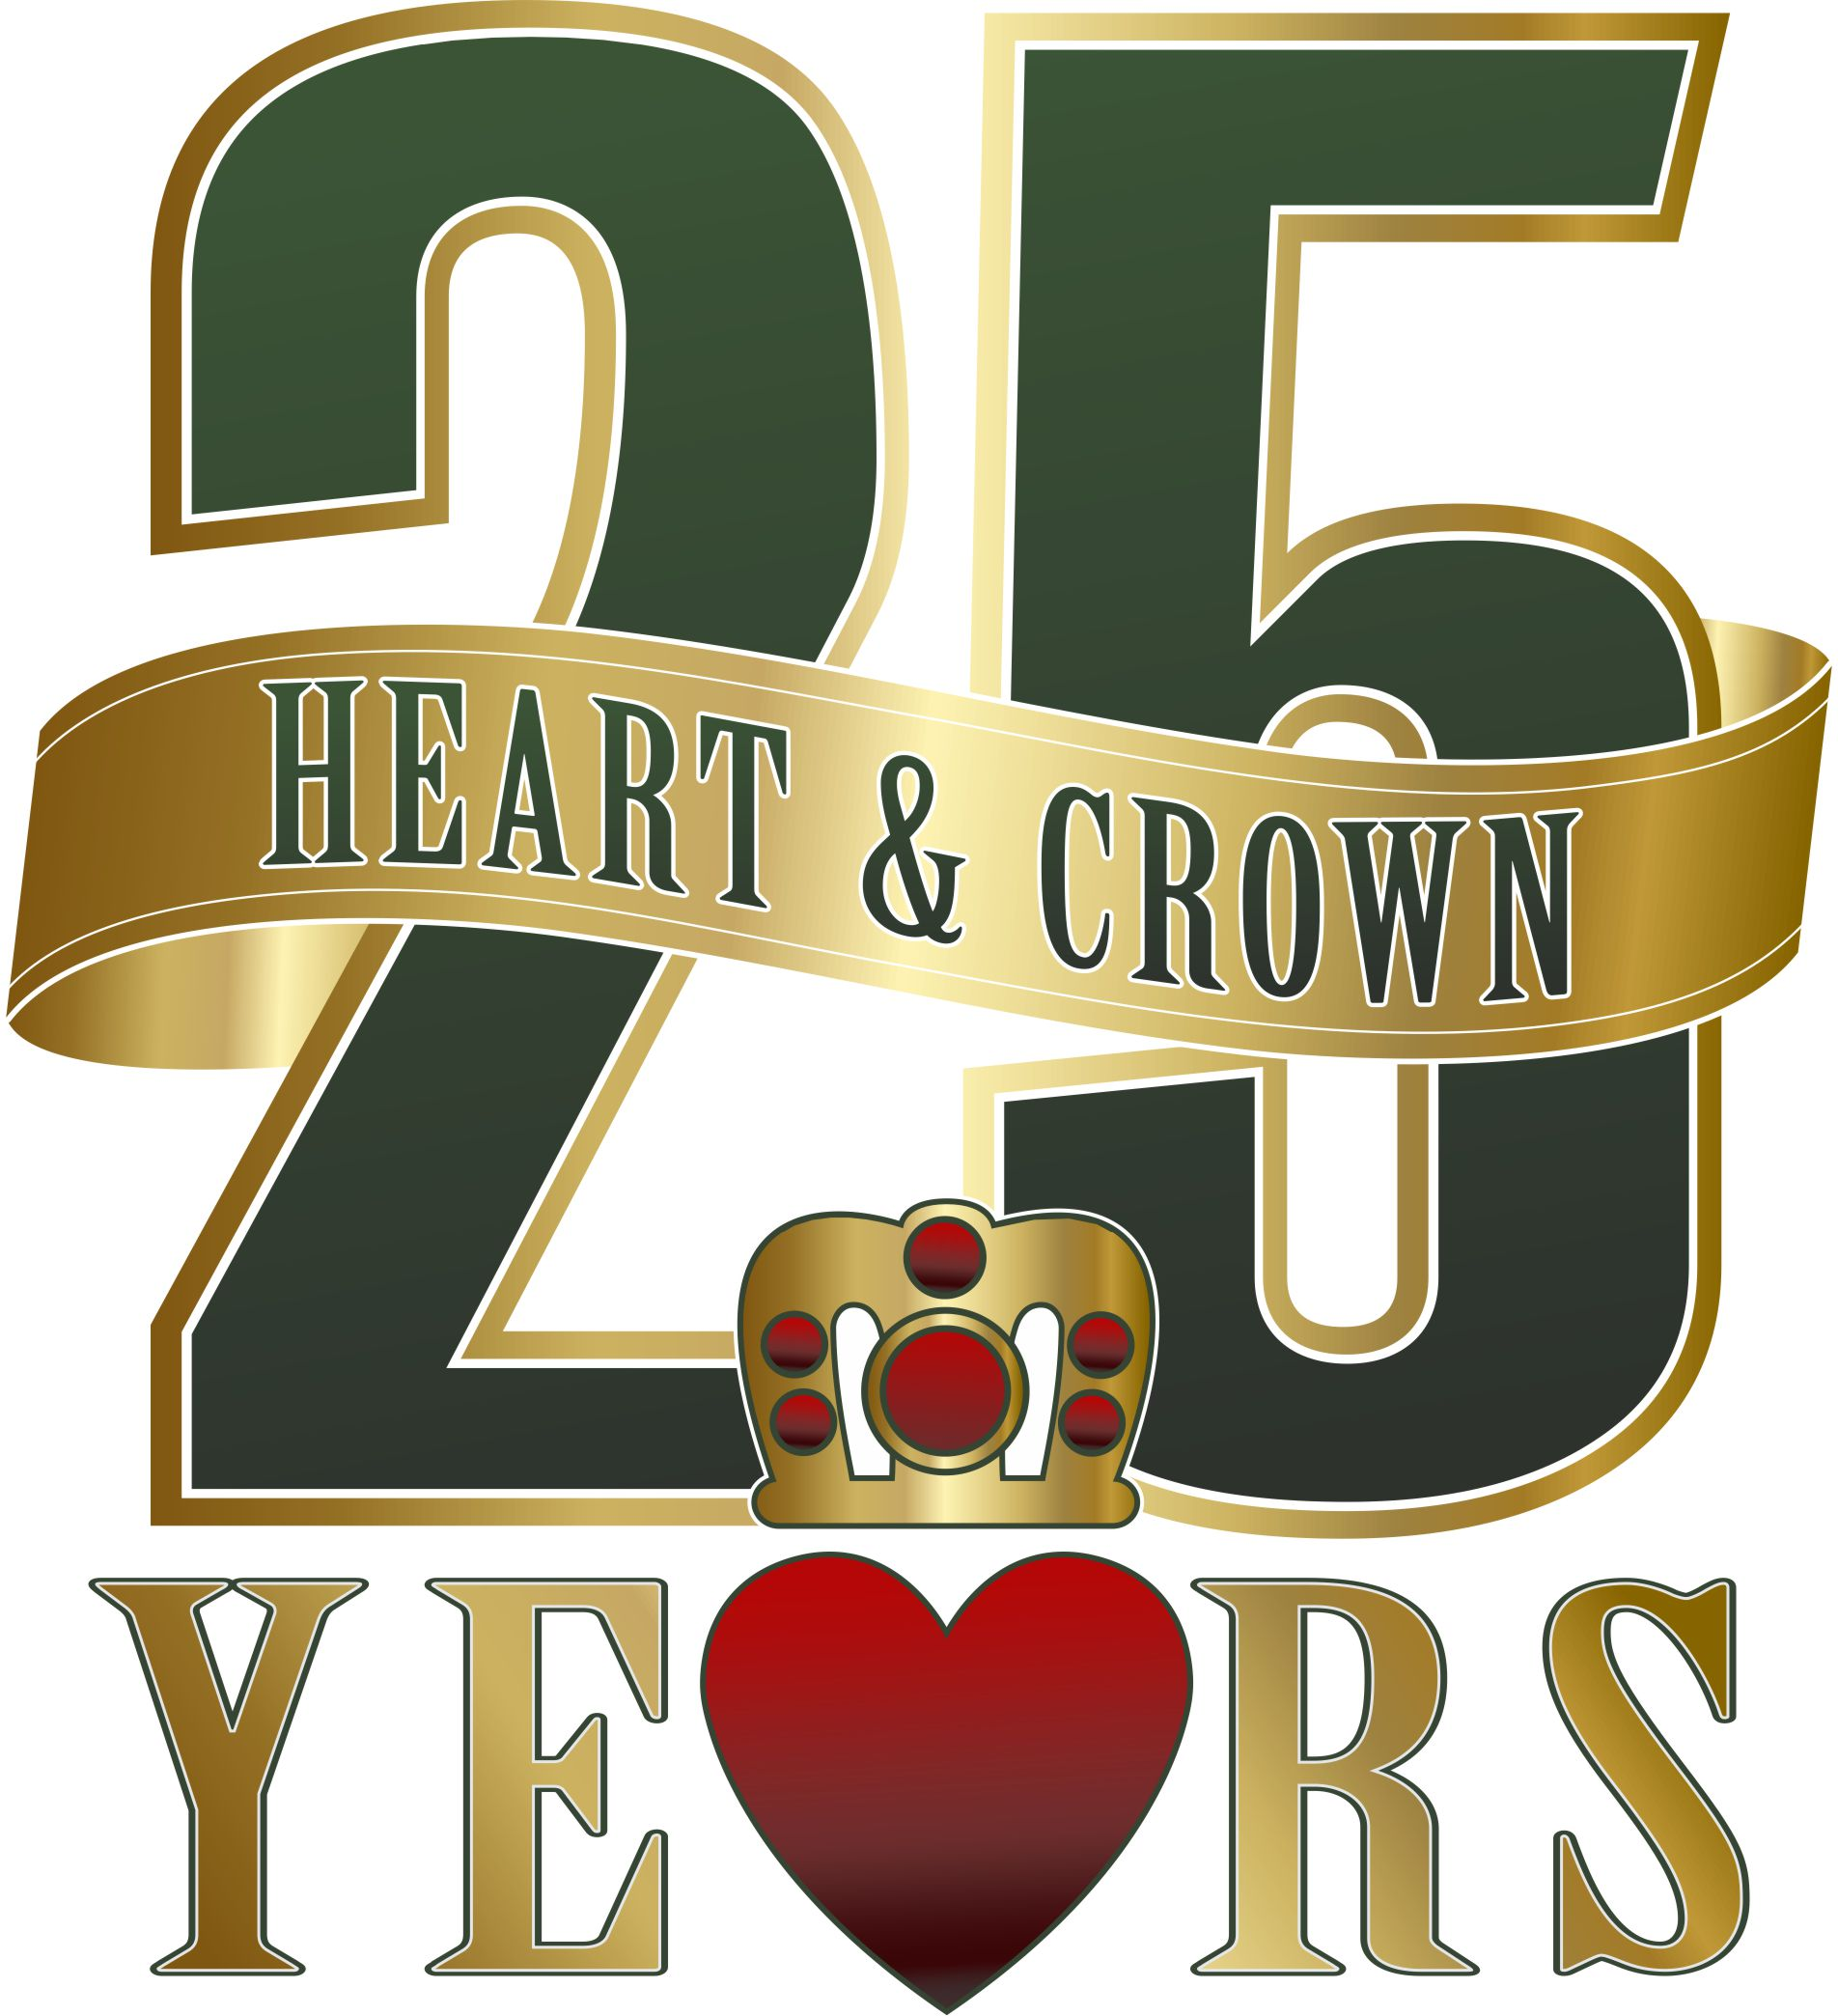 Heart and Crown Pub